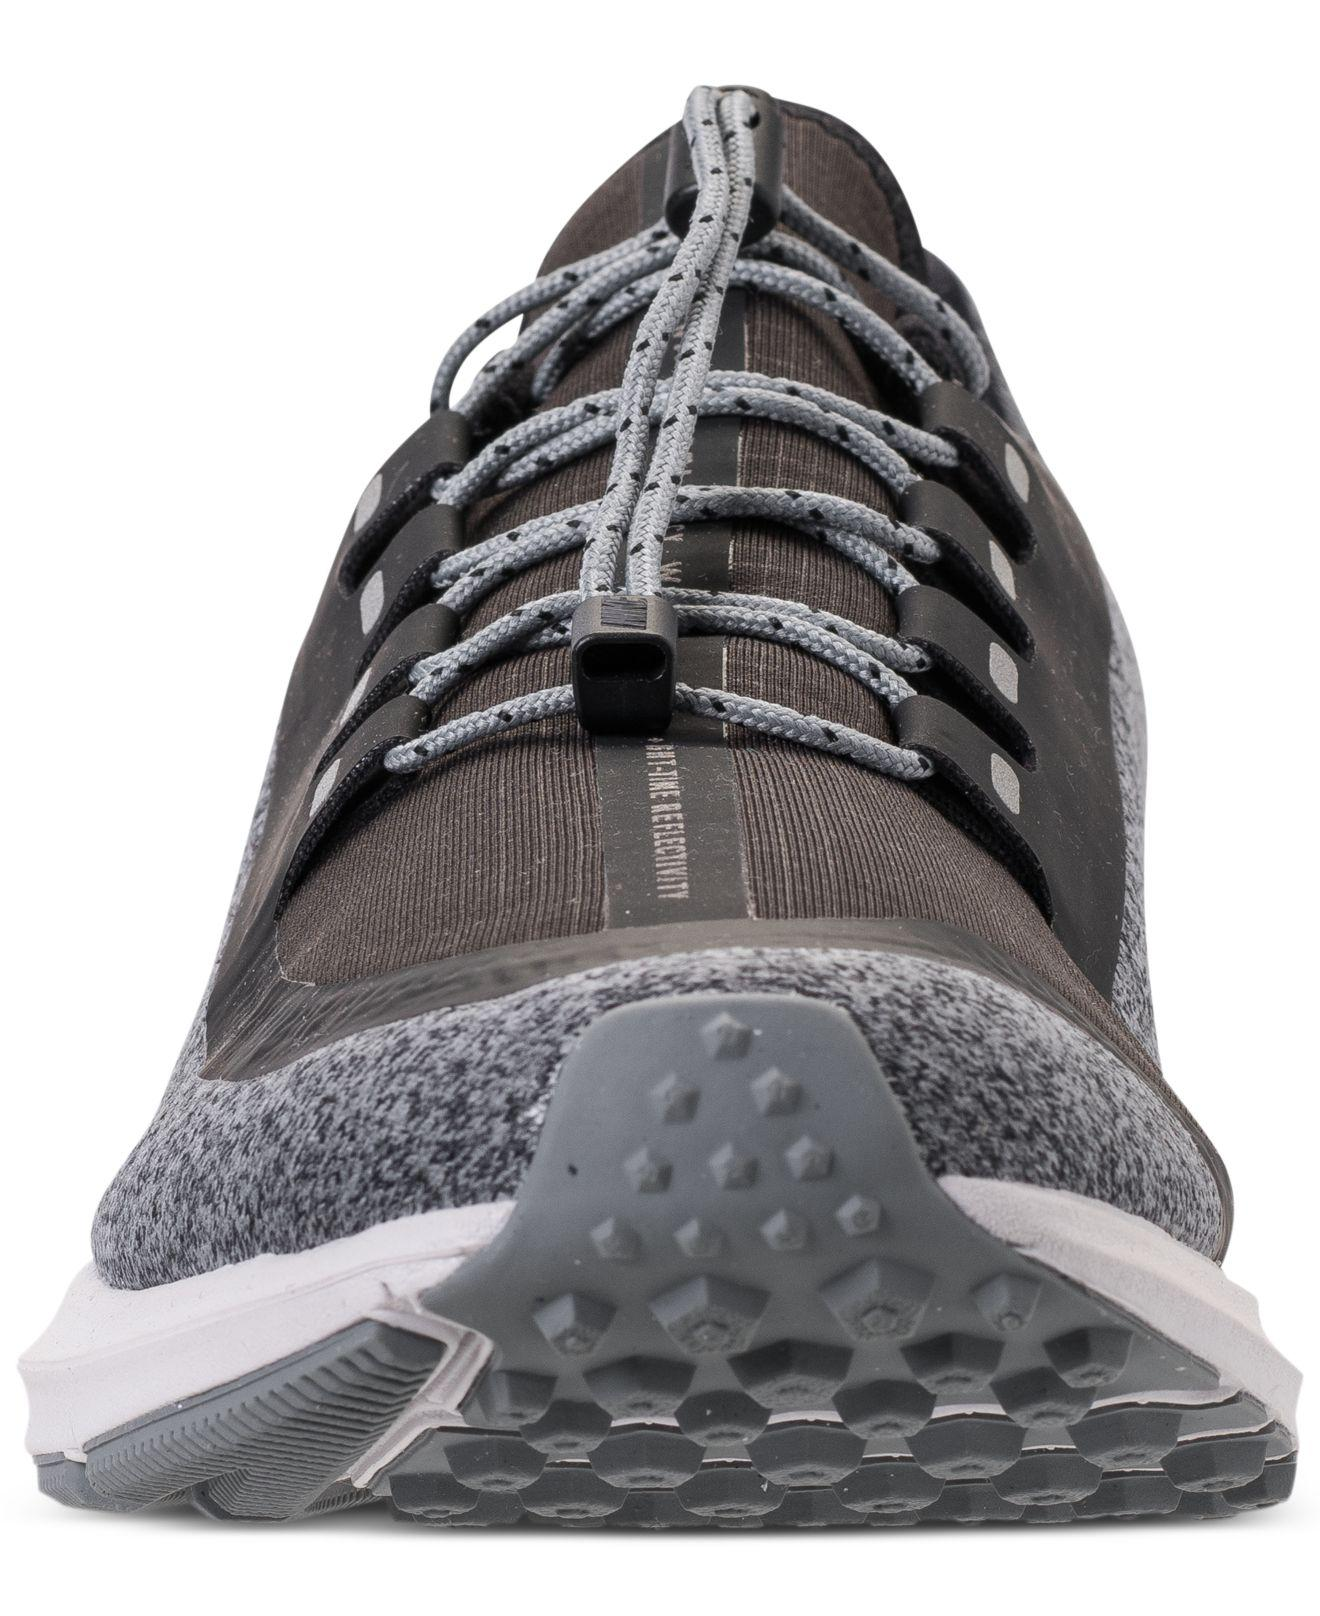 pretty nice 07479 4b97e nike-BLACKMETALLIC-SILVER-COO-Air-Zoom-Winflo-5-Shield-Running-Sneakers -From-Finish-Line.jpeg